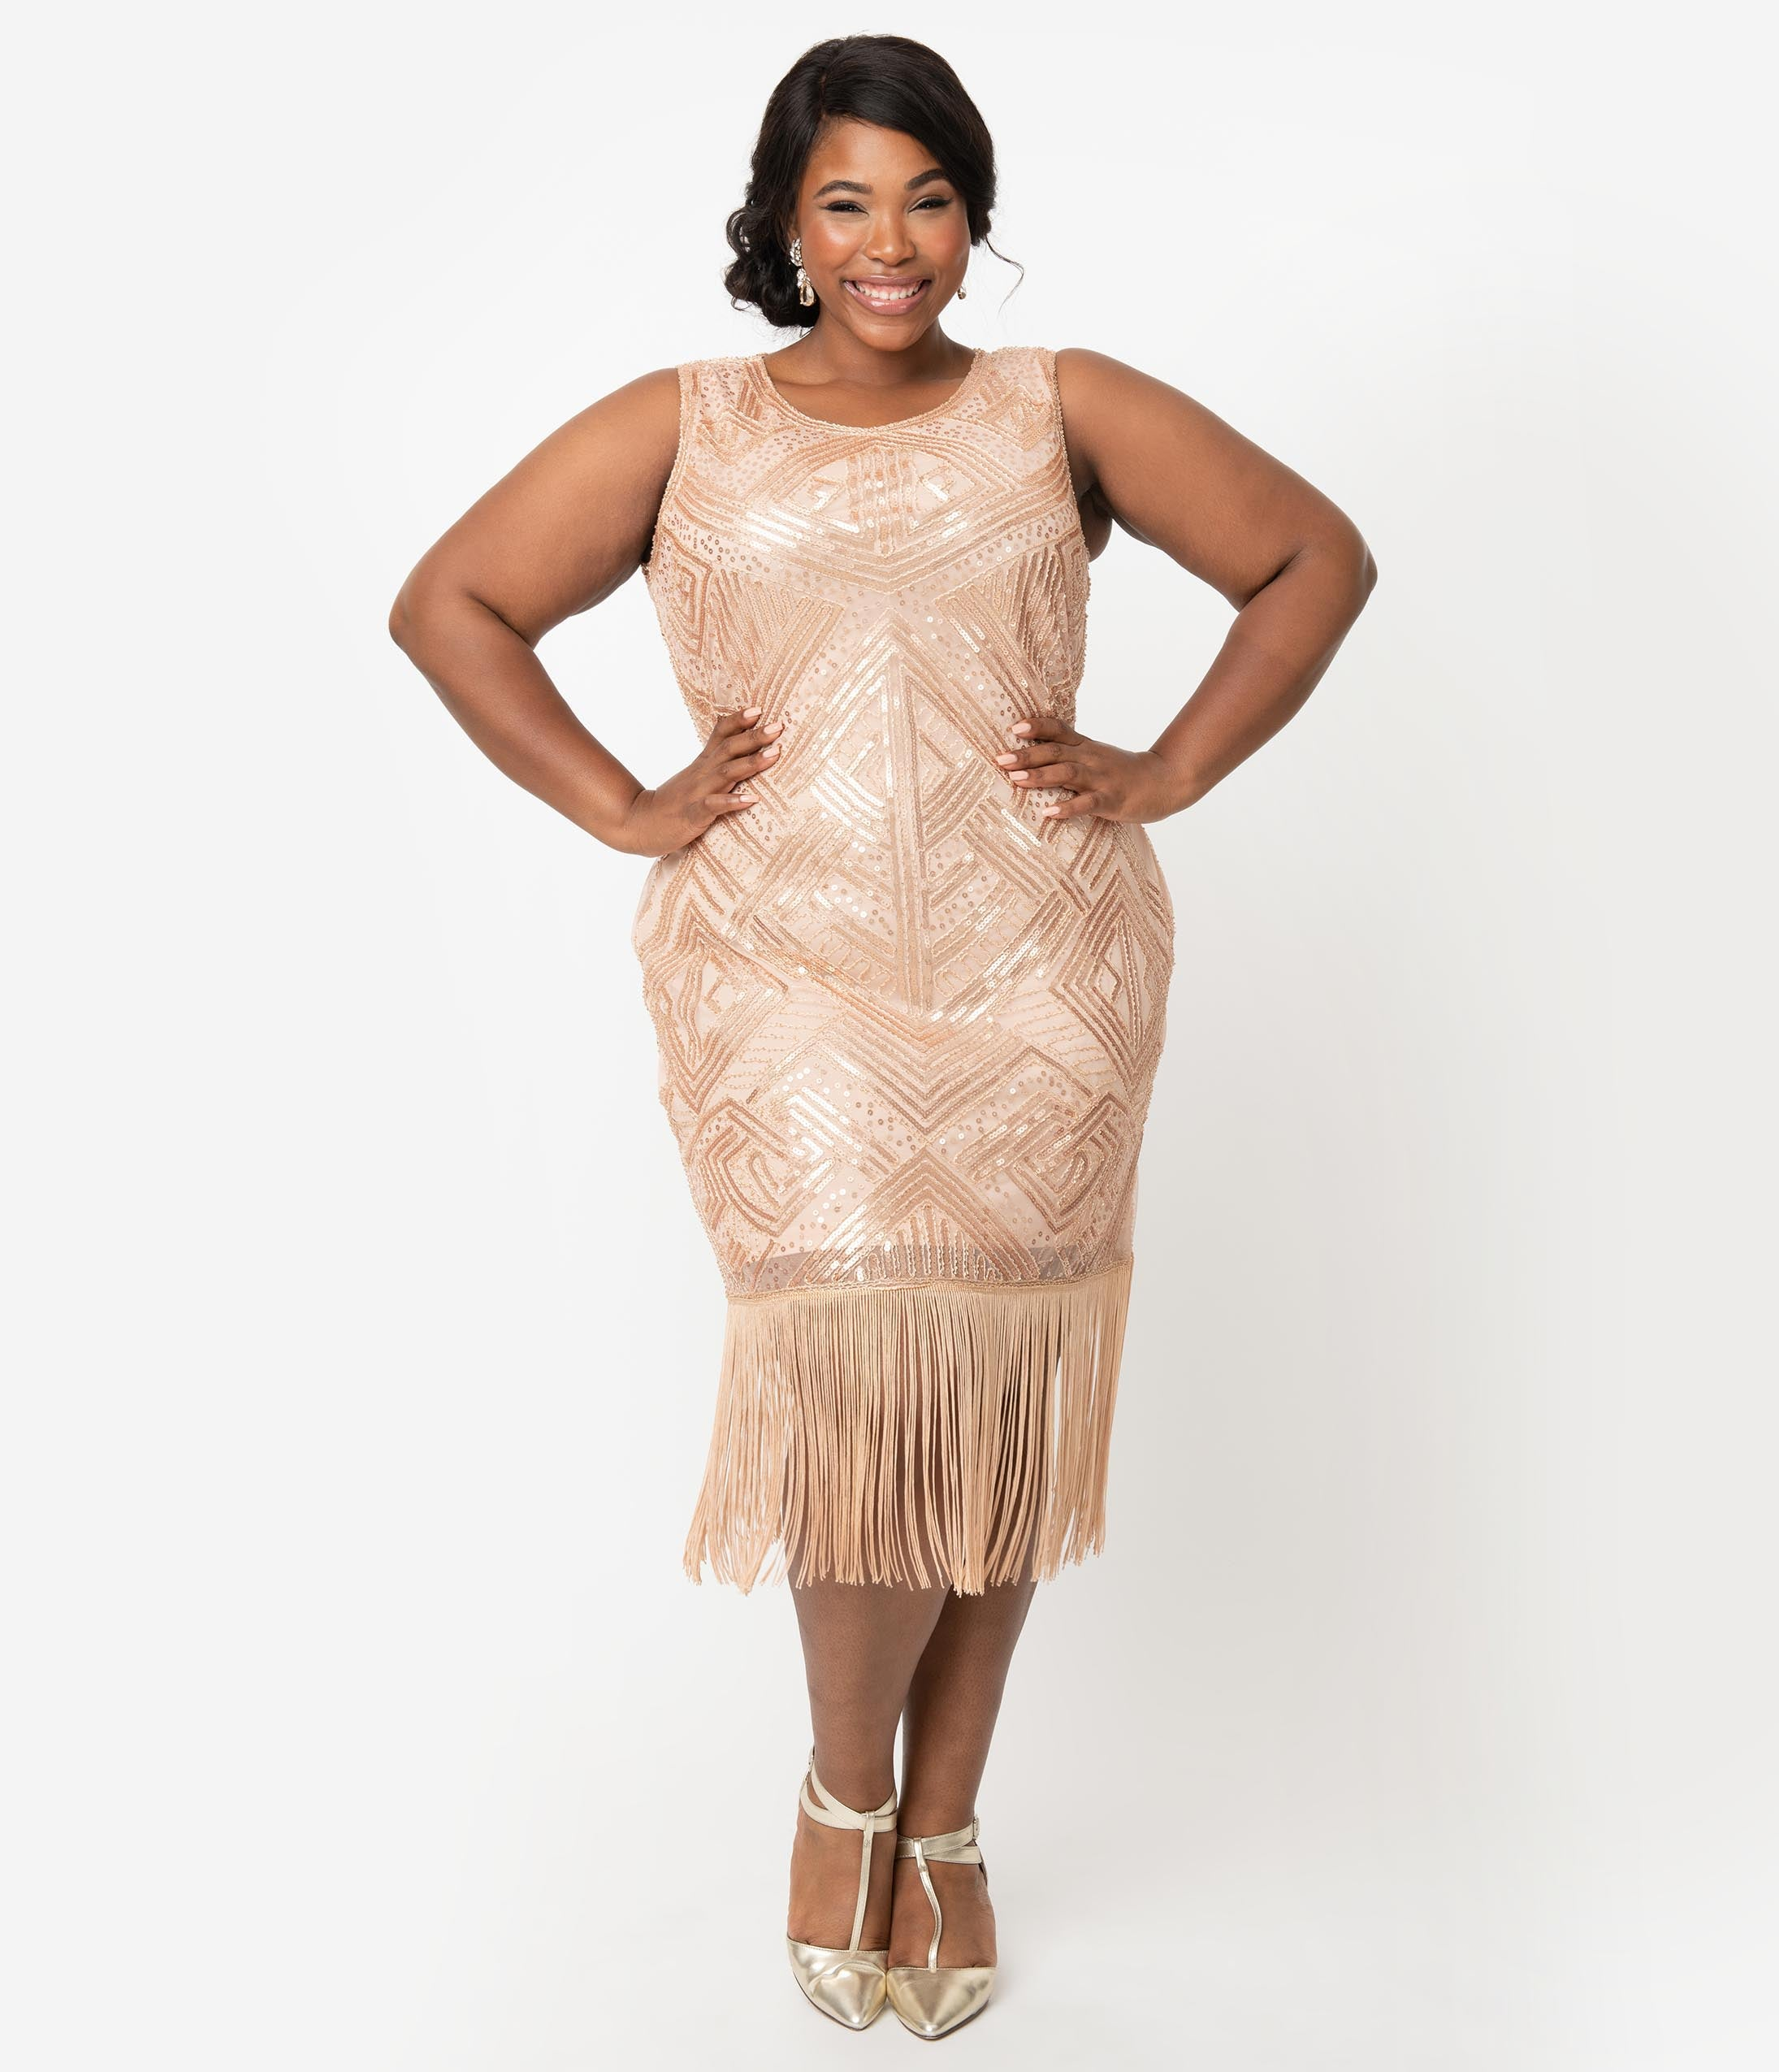 1920s Plus Size Flapper Dresses, Gatsby Dresses, Flapper Costumes Unique Vintage Plus Size 1920S Style Blush Pink Sequin Sleeveless Fringe Calais Flapper Dress $88.00 AT vintagedancer.com